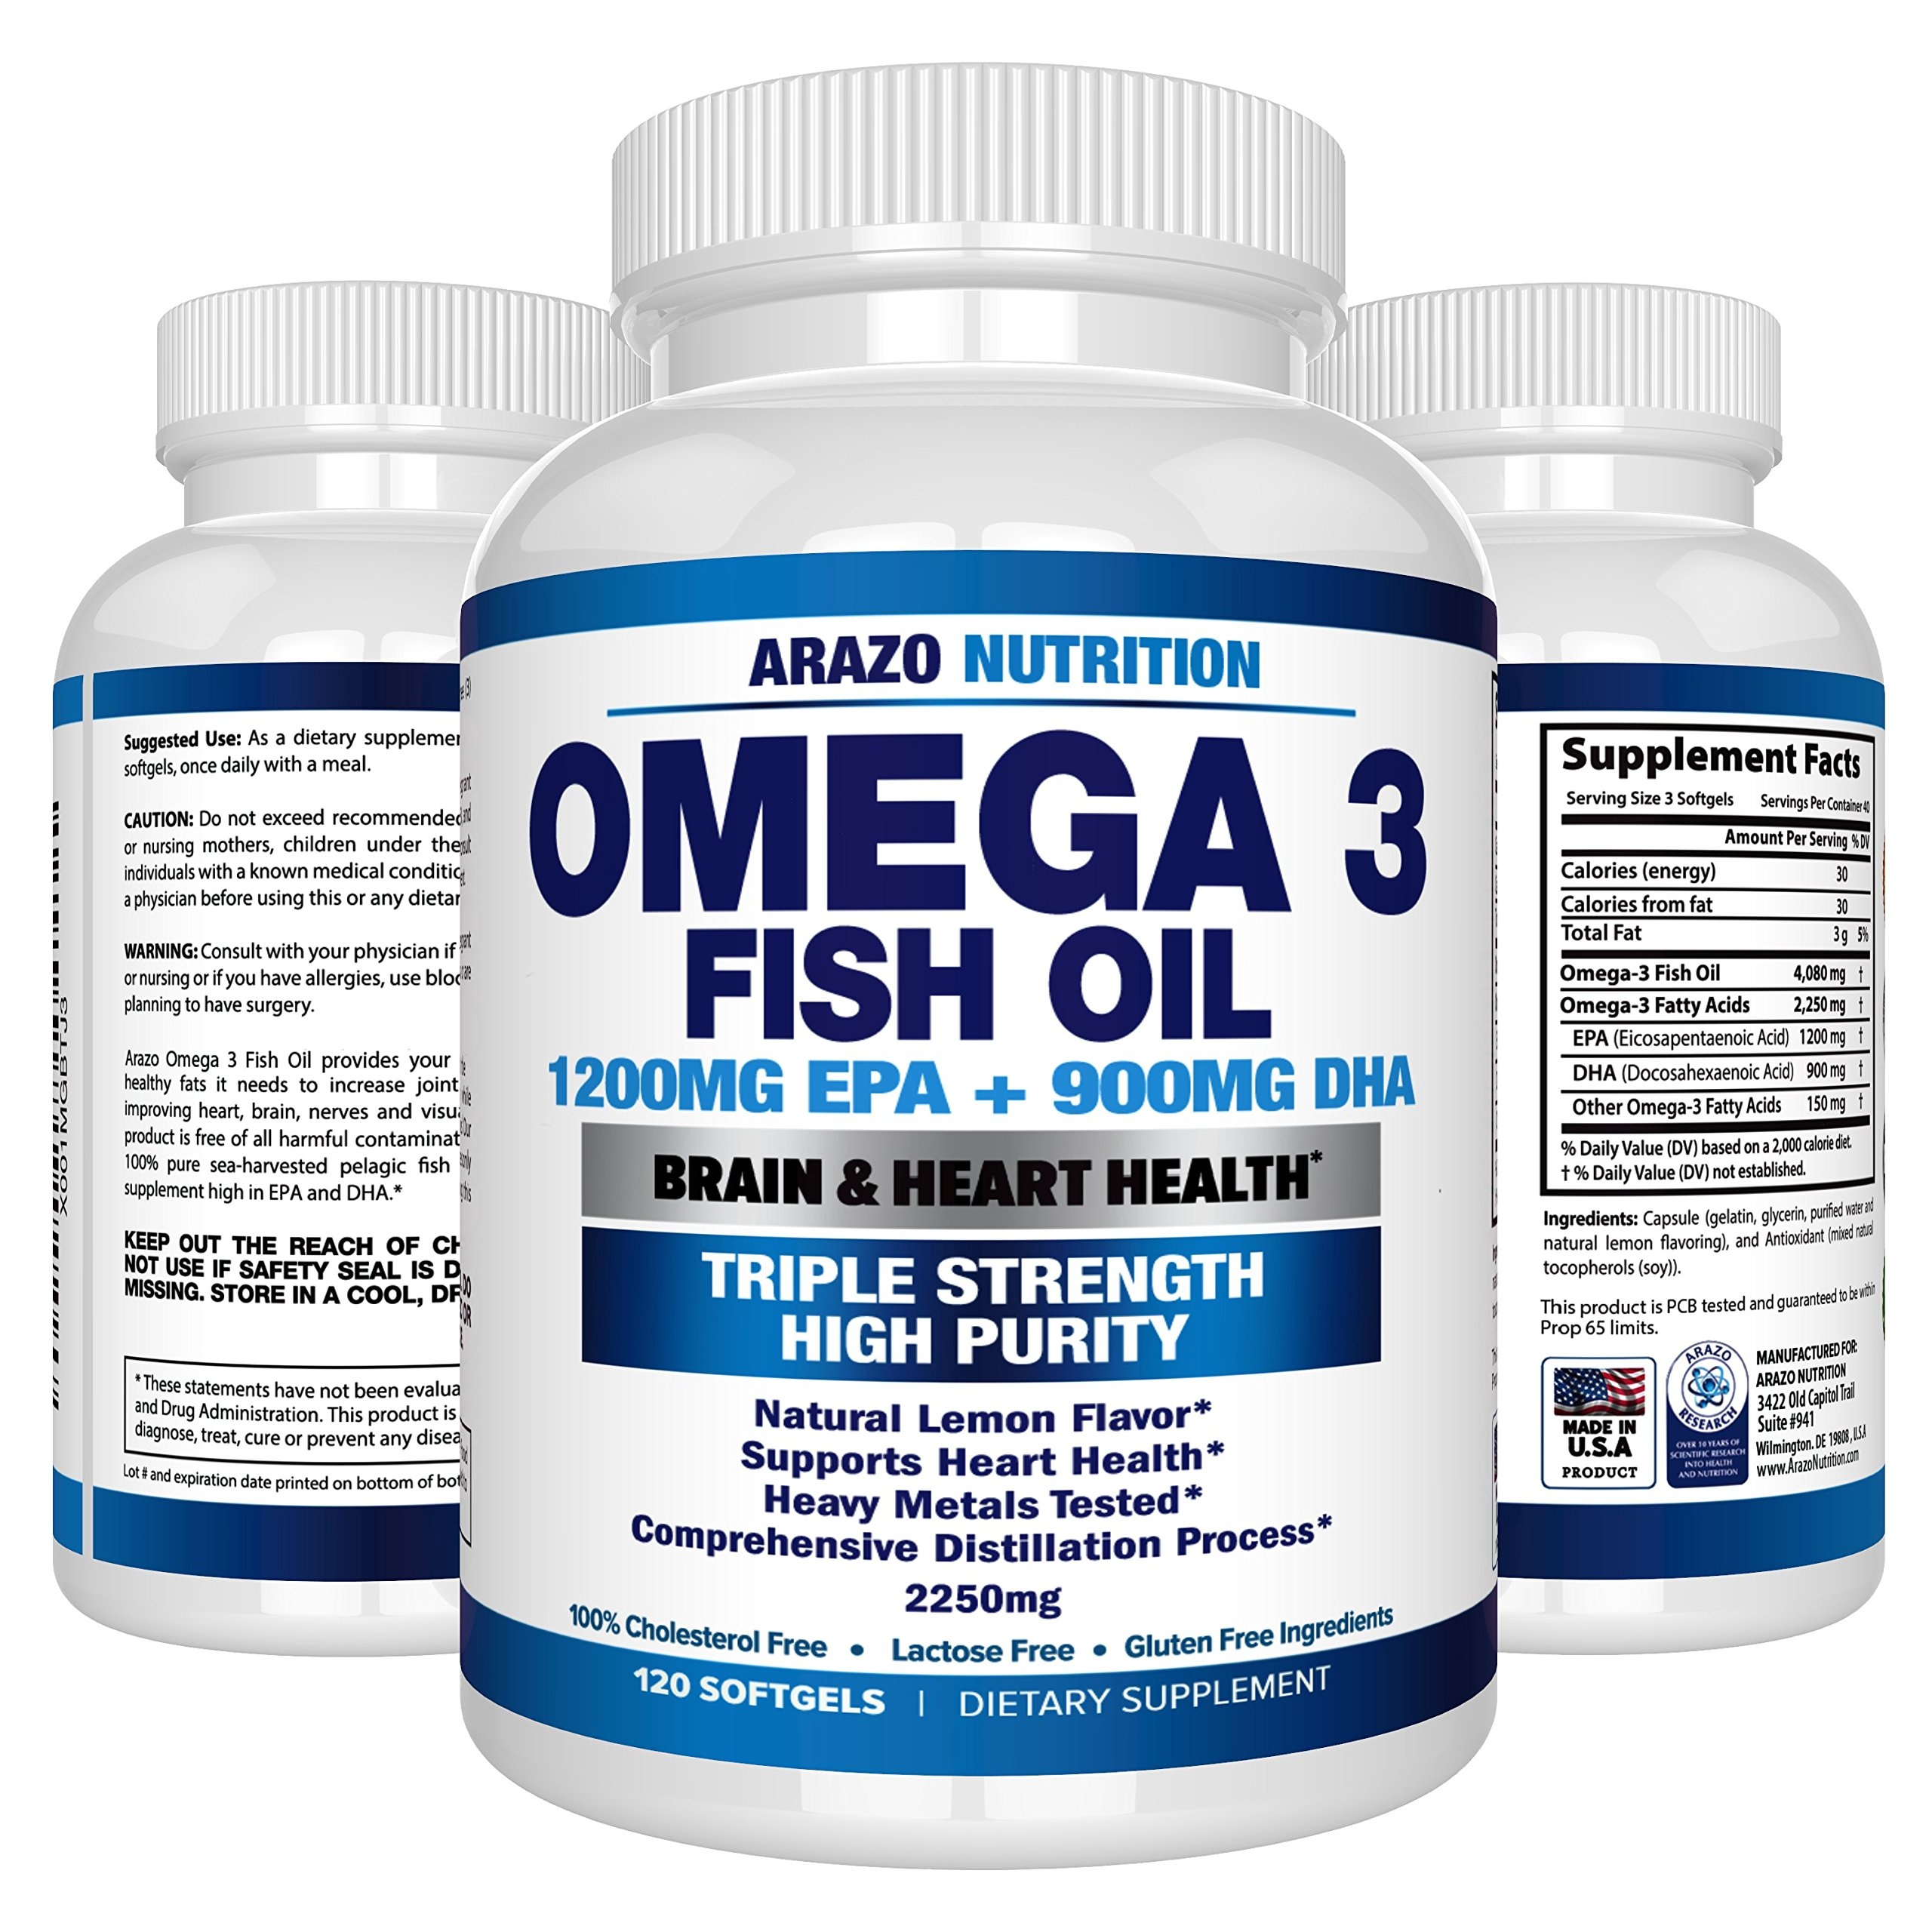 Glucosamine chondroitin msm turmeric for Omega 3 fish oil pills